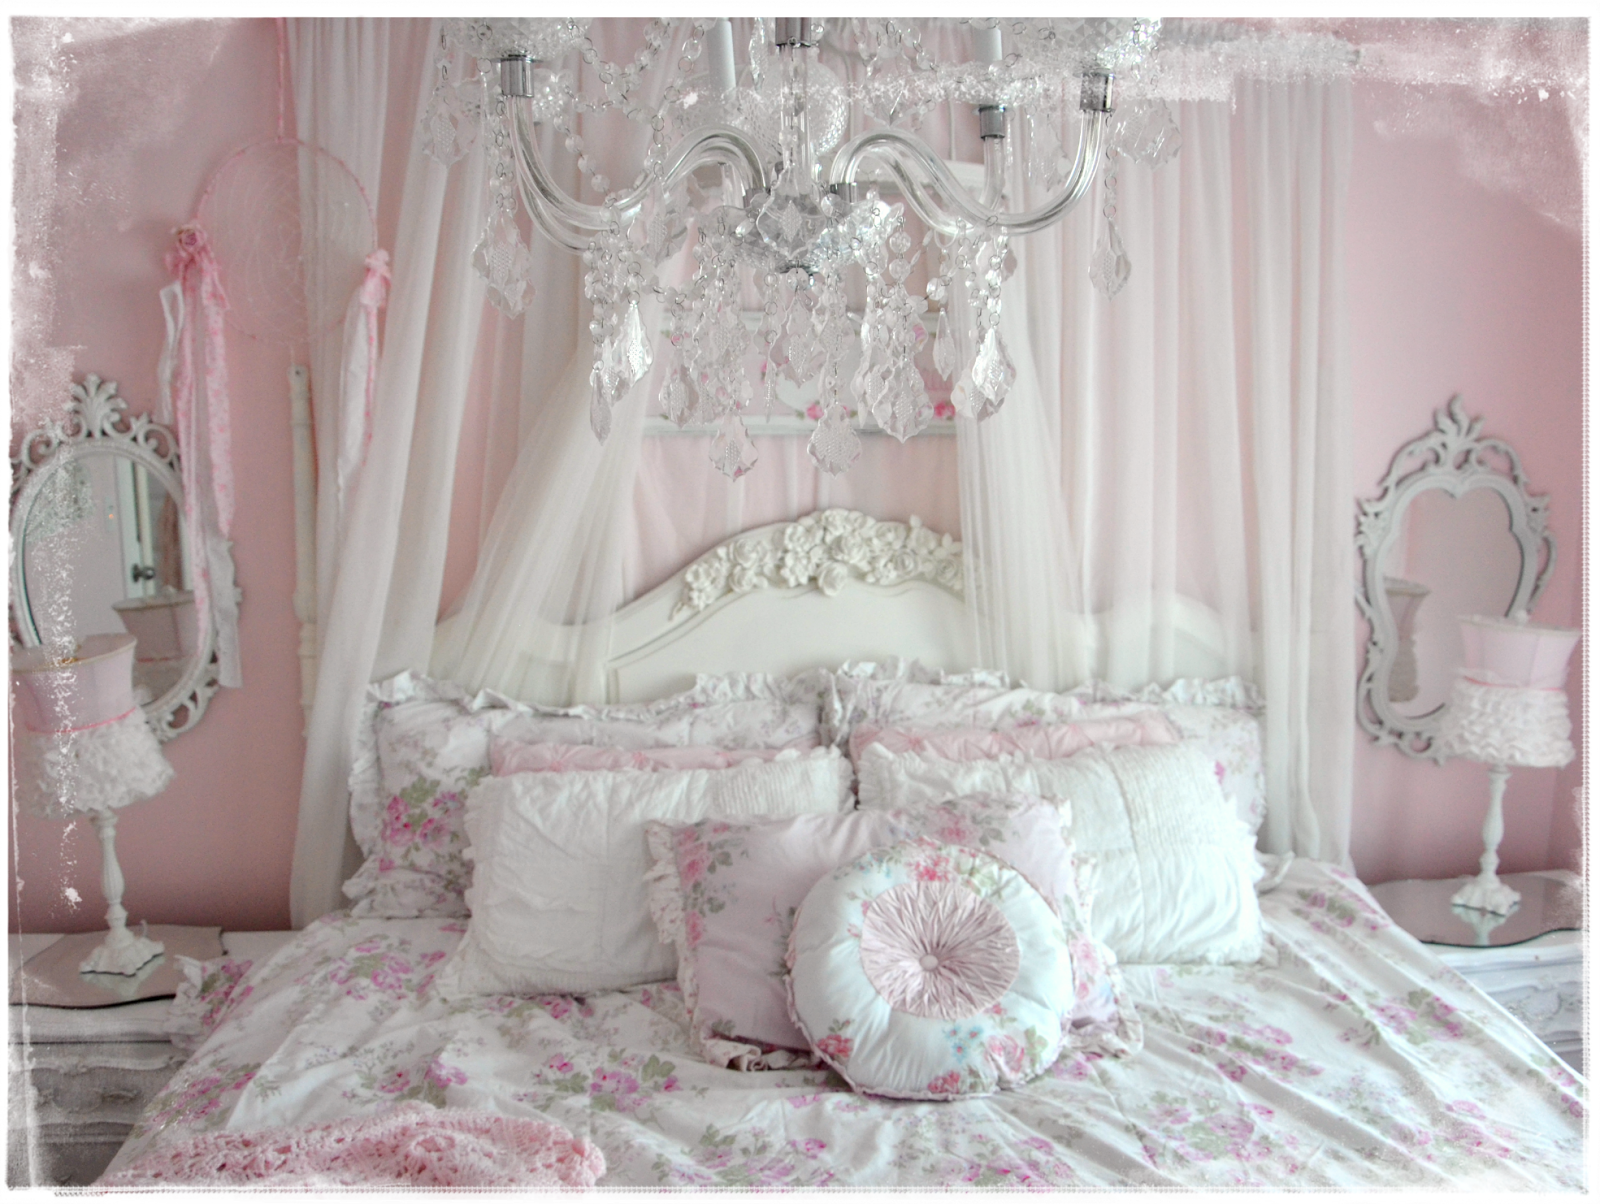 Chambre Shabby Chic Romantique Shabby Chic Bedding New Simply Shabby Chic Bedding Bbeautiful